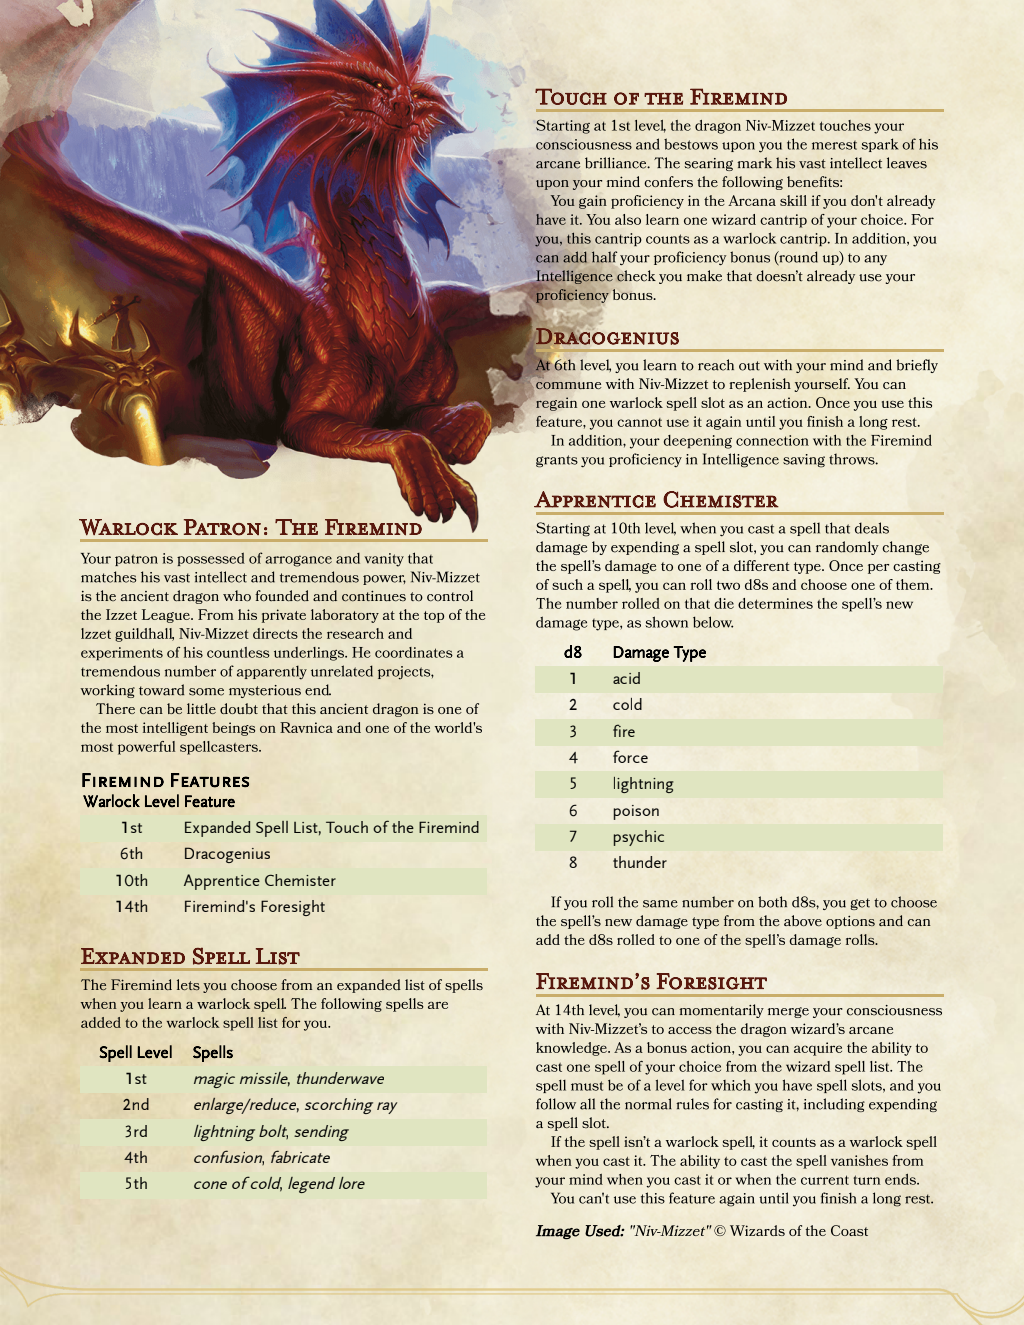 Pin On Dnd 5e Subclasses You can also reduce or enlarge your image using the preset options (eg a5 > a4, a4 > a3). pin on dnd 5e subclasses